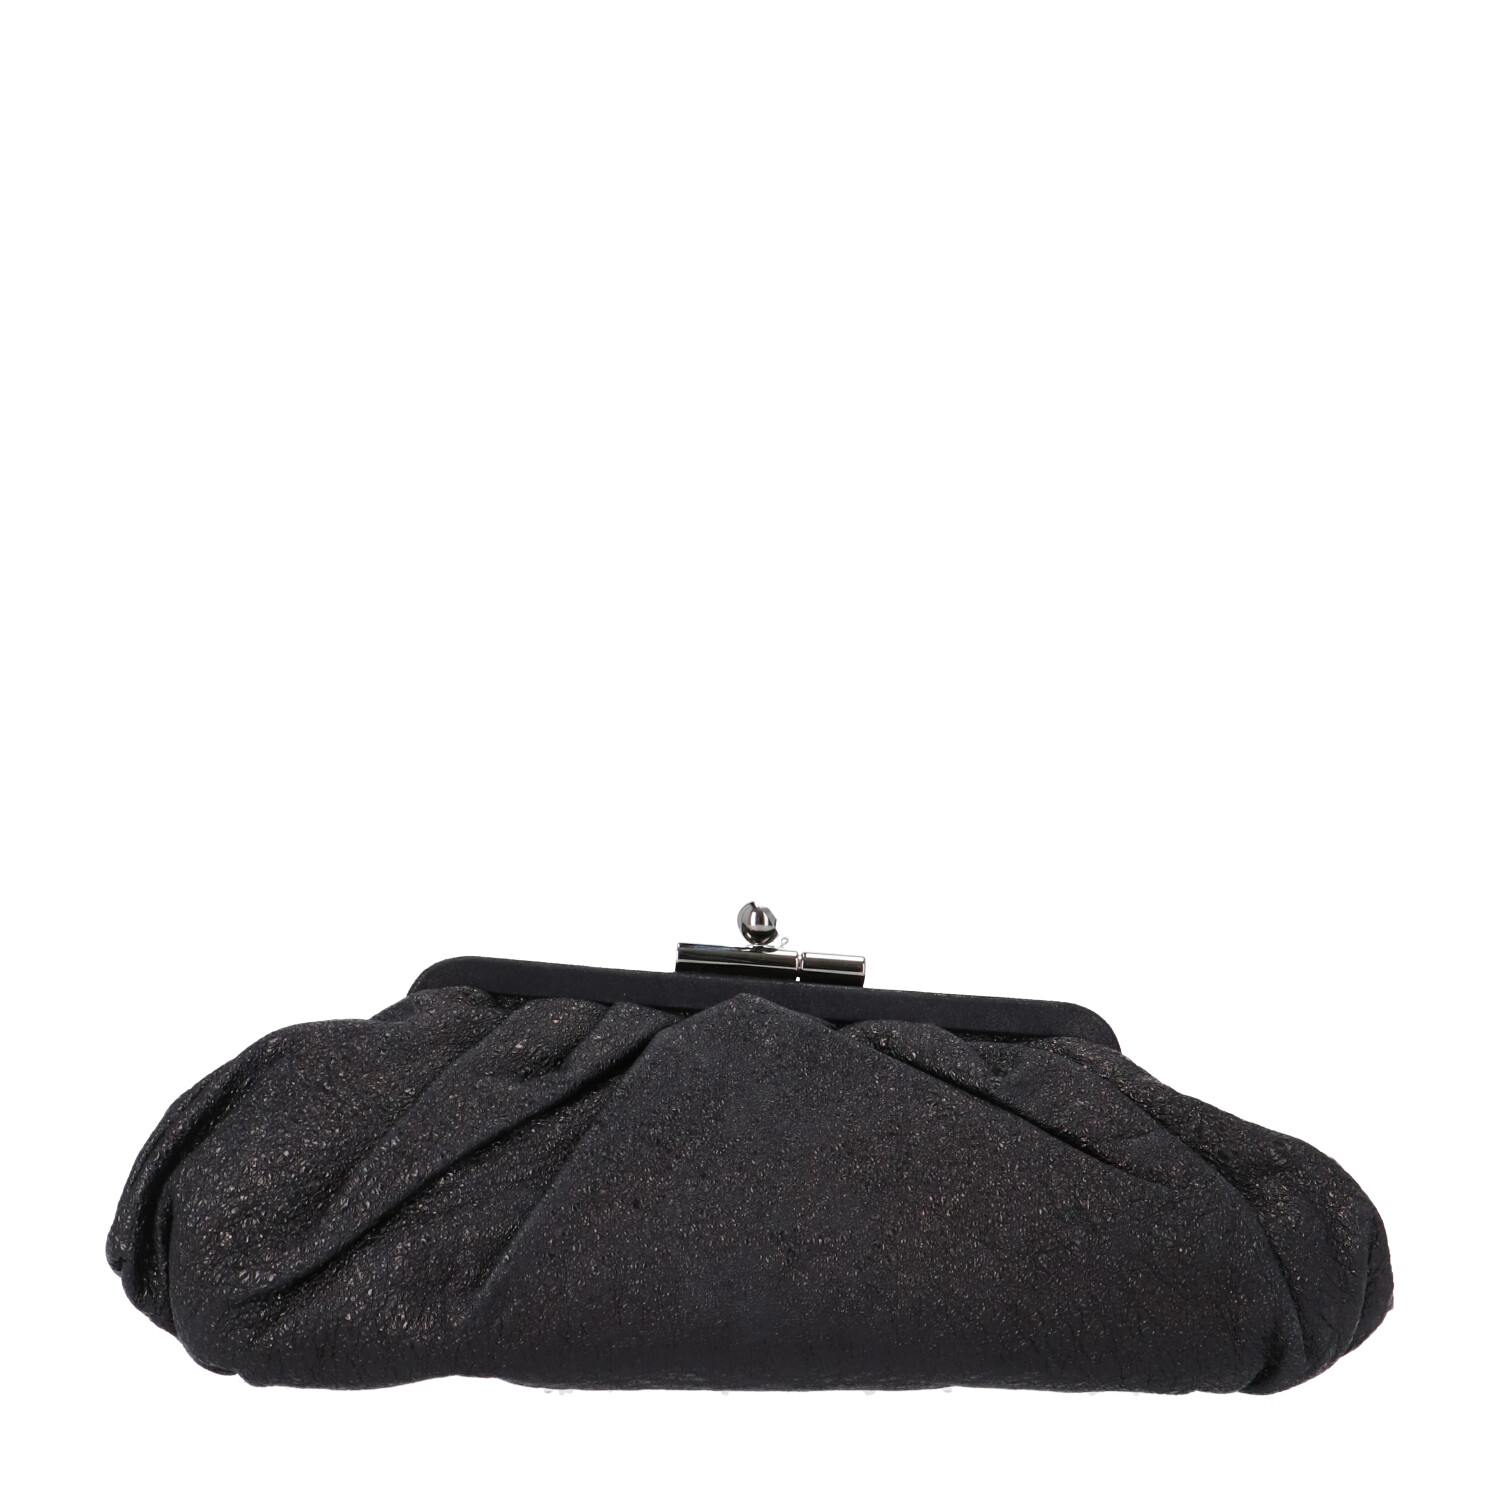 Chanel Black Patent Crinkled Leather Clutch